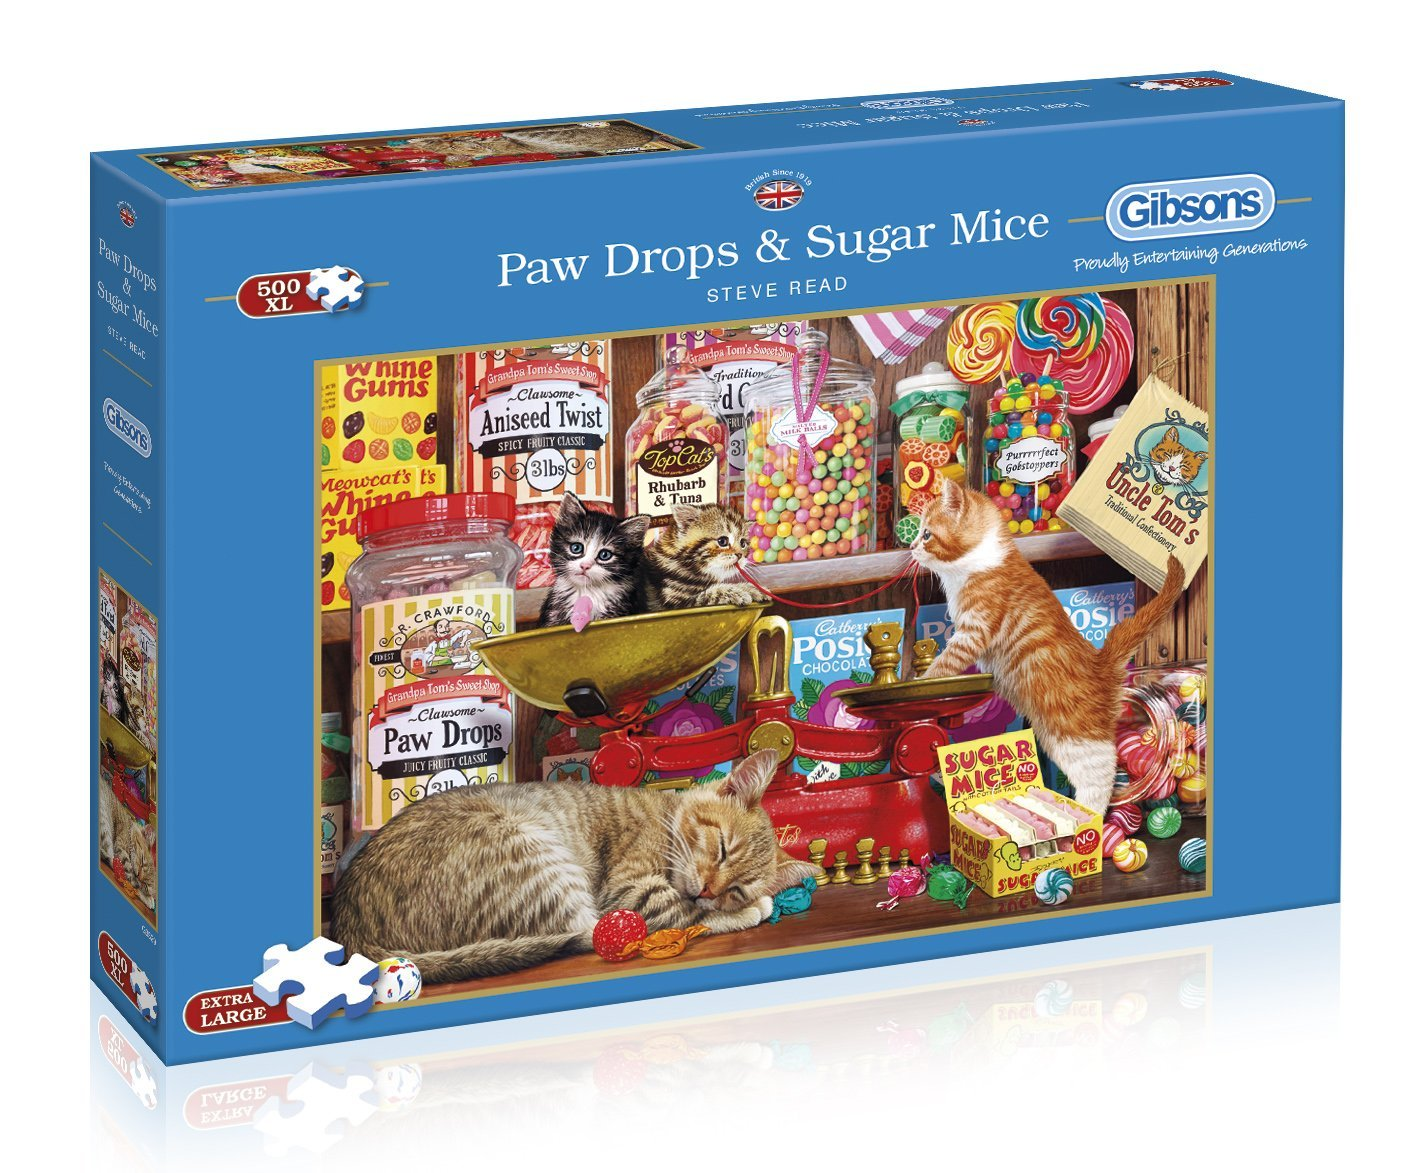 Paw Drops And Sugar Mice, 500 XL Puzzle